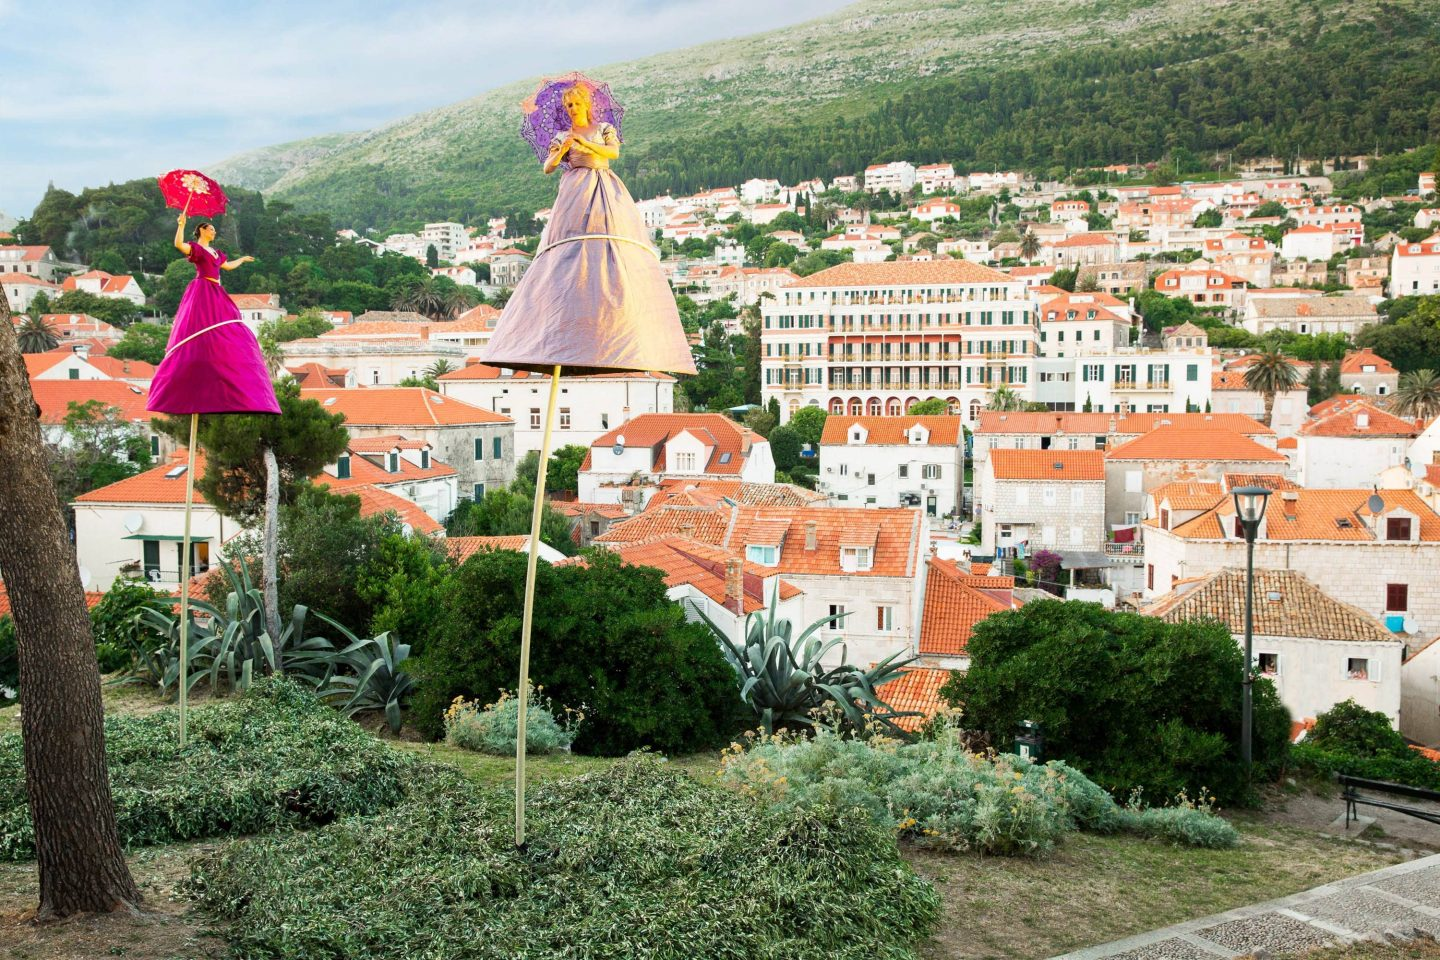 Women on stilts leading the way to Fort Lovrijenac at this Dubrovnik wedding in Croatia | Photo by Robert Fairer